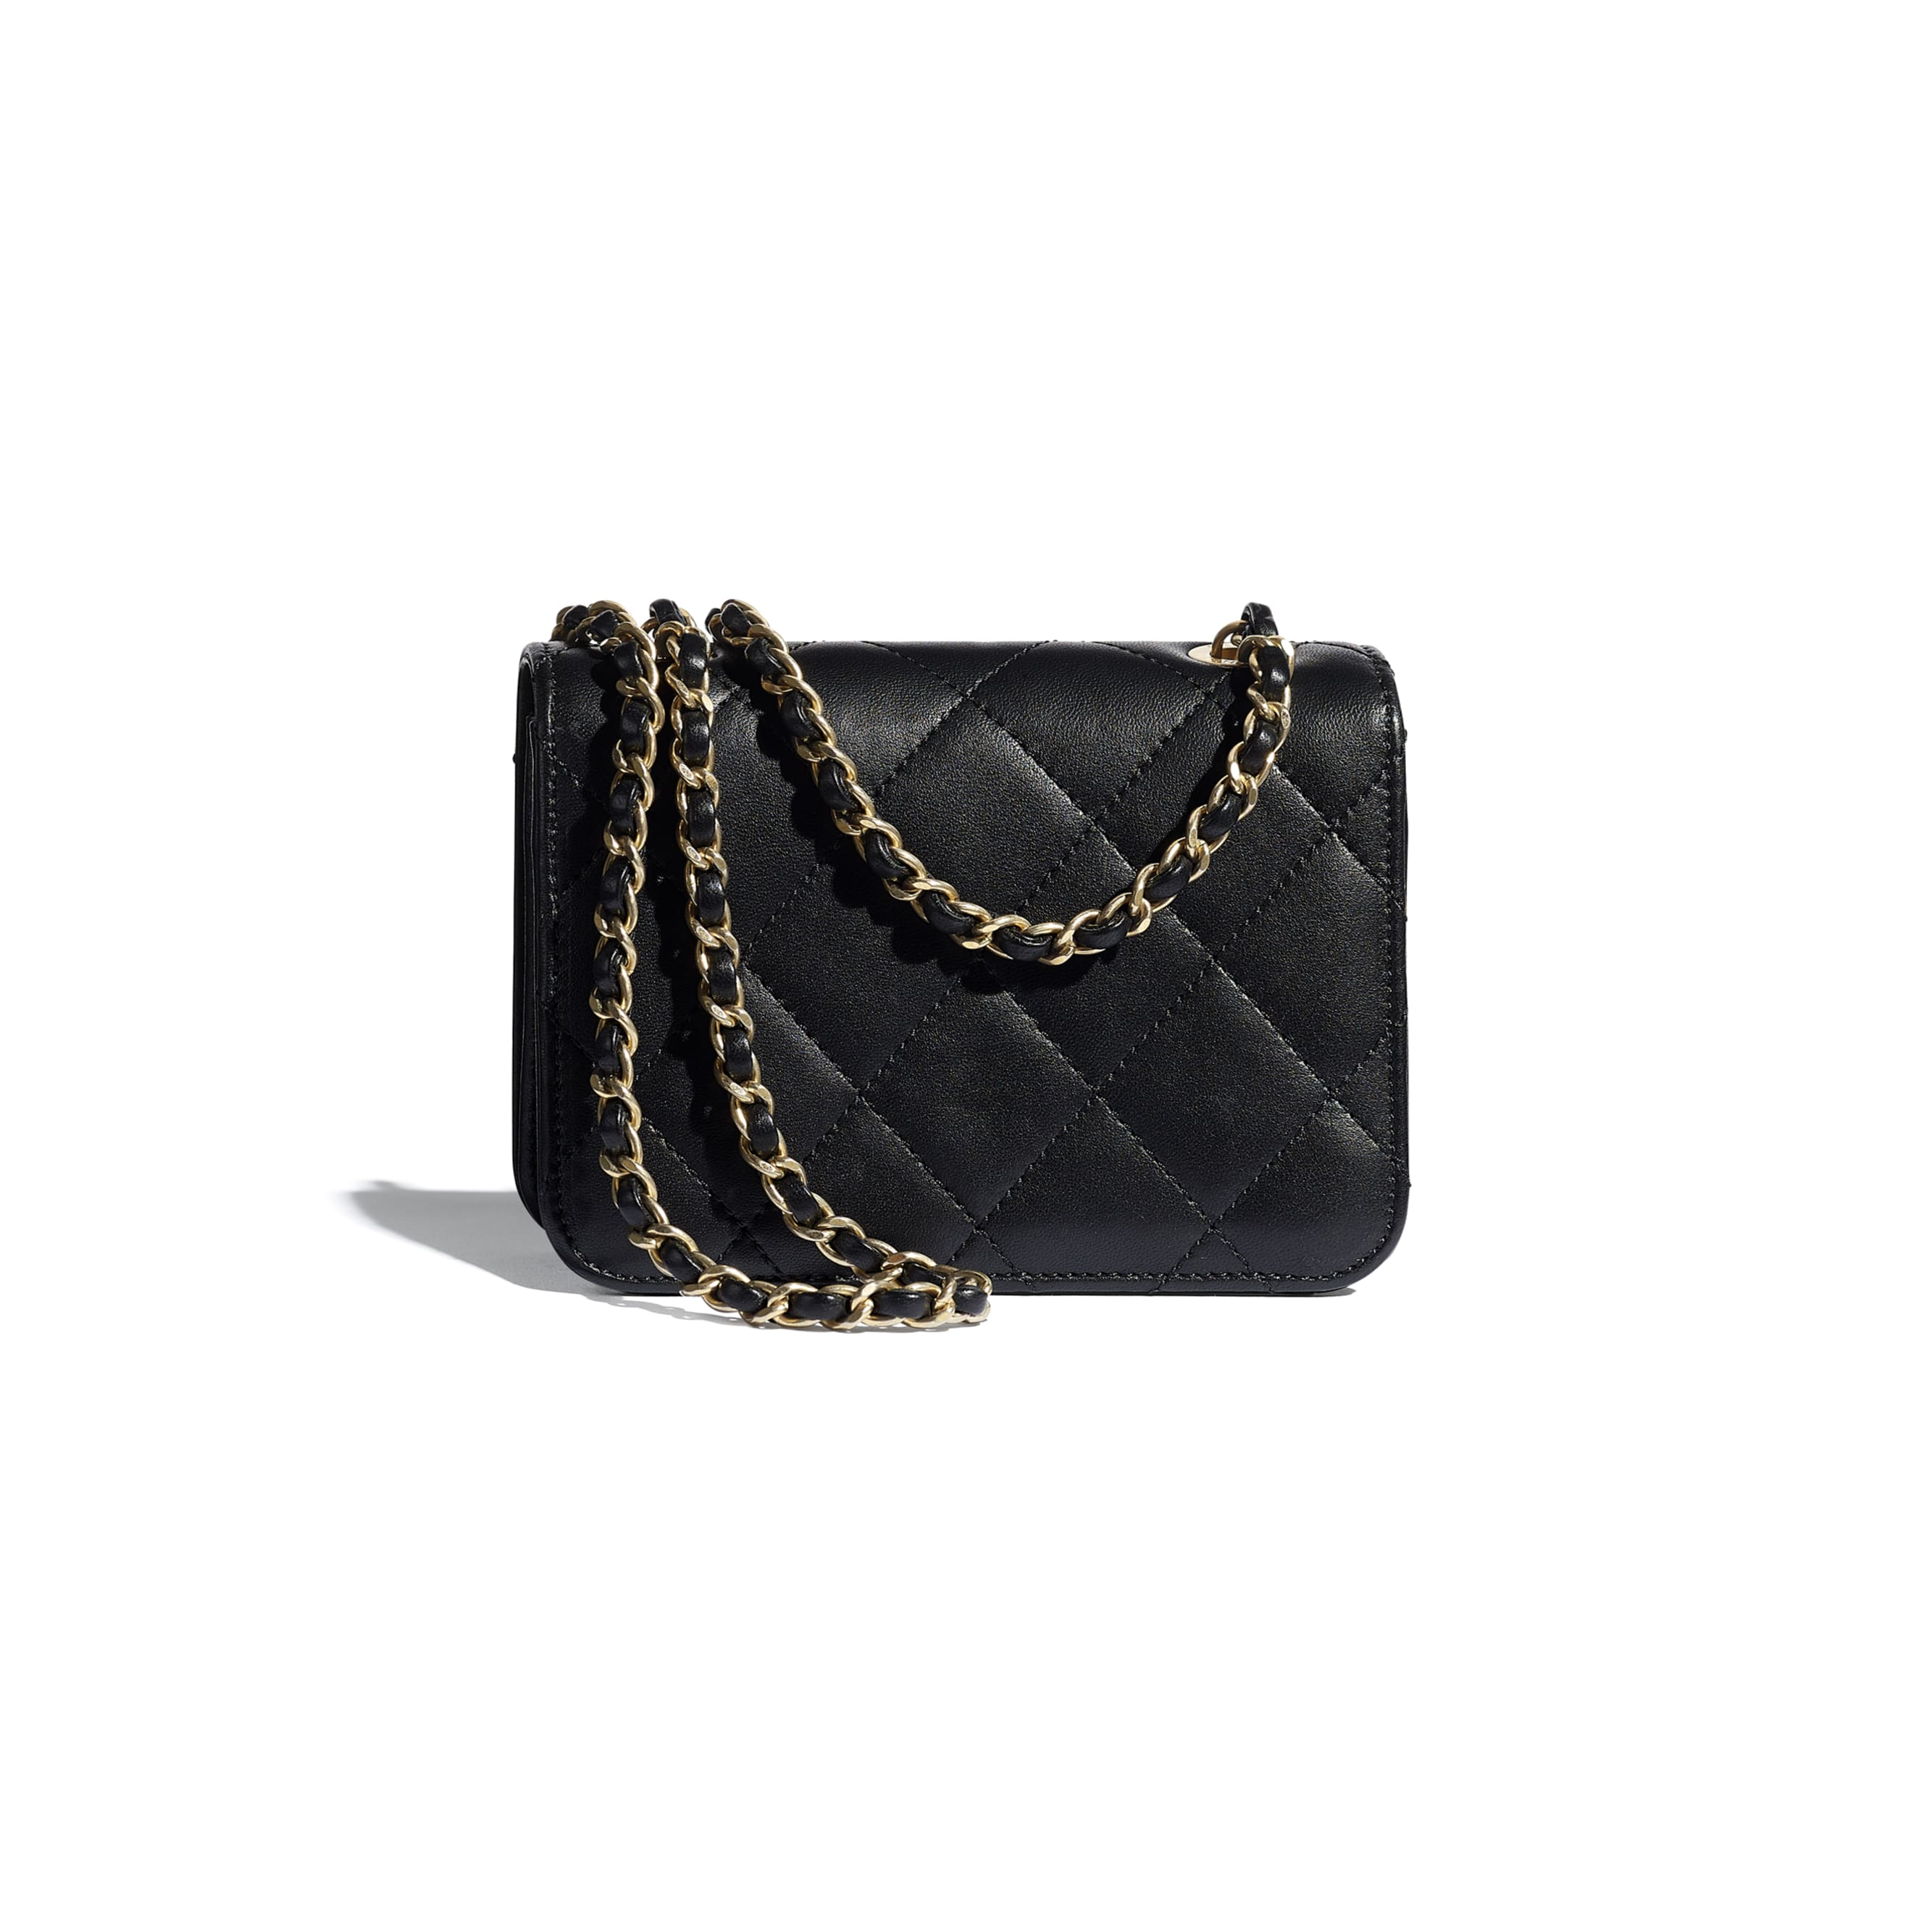 Small Flap Bag - Black - Calfskin, Crystal Pearls, Resin & Gold-Tone Metal - CHANEL - Alternative view - see standard sized version